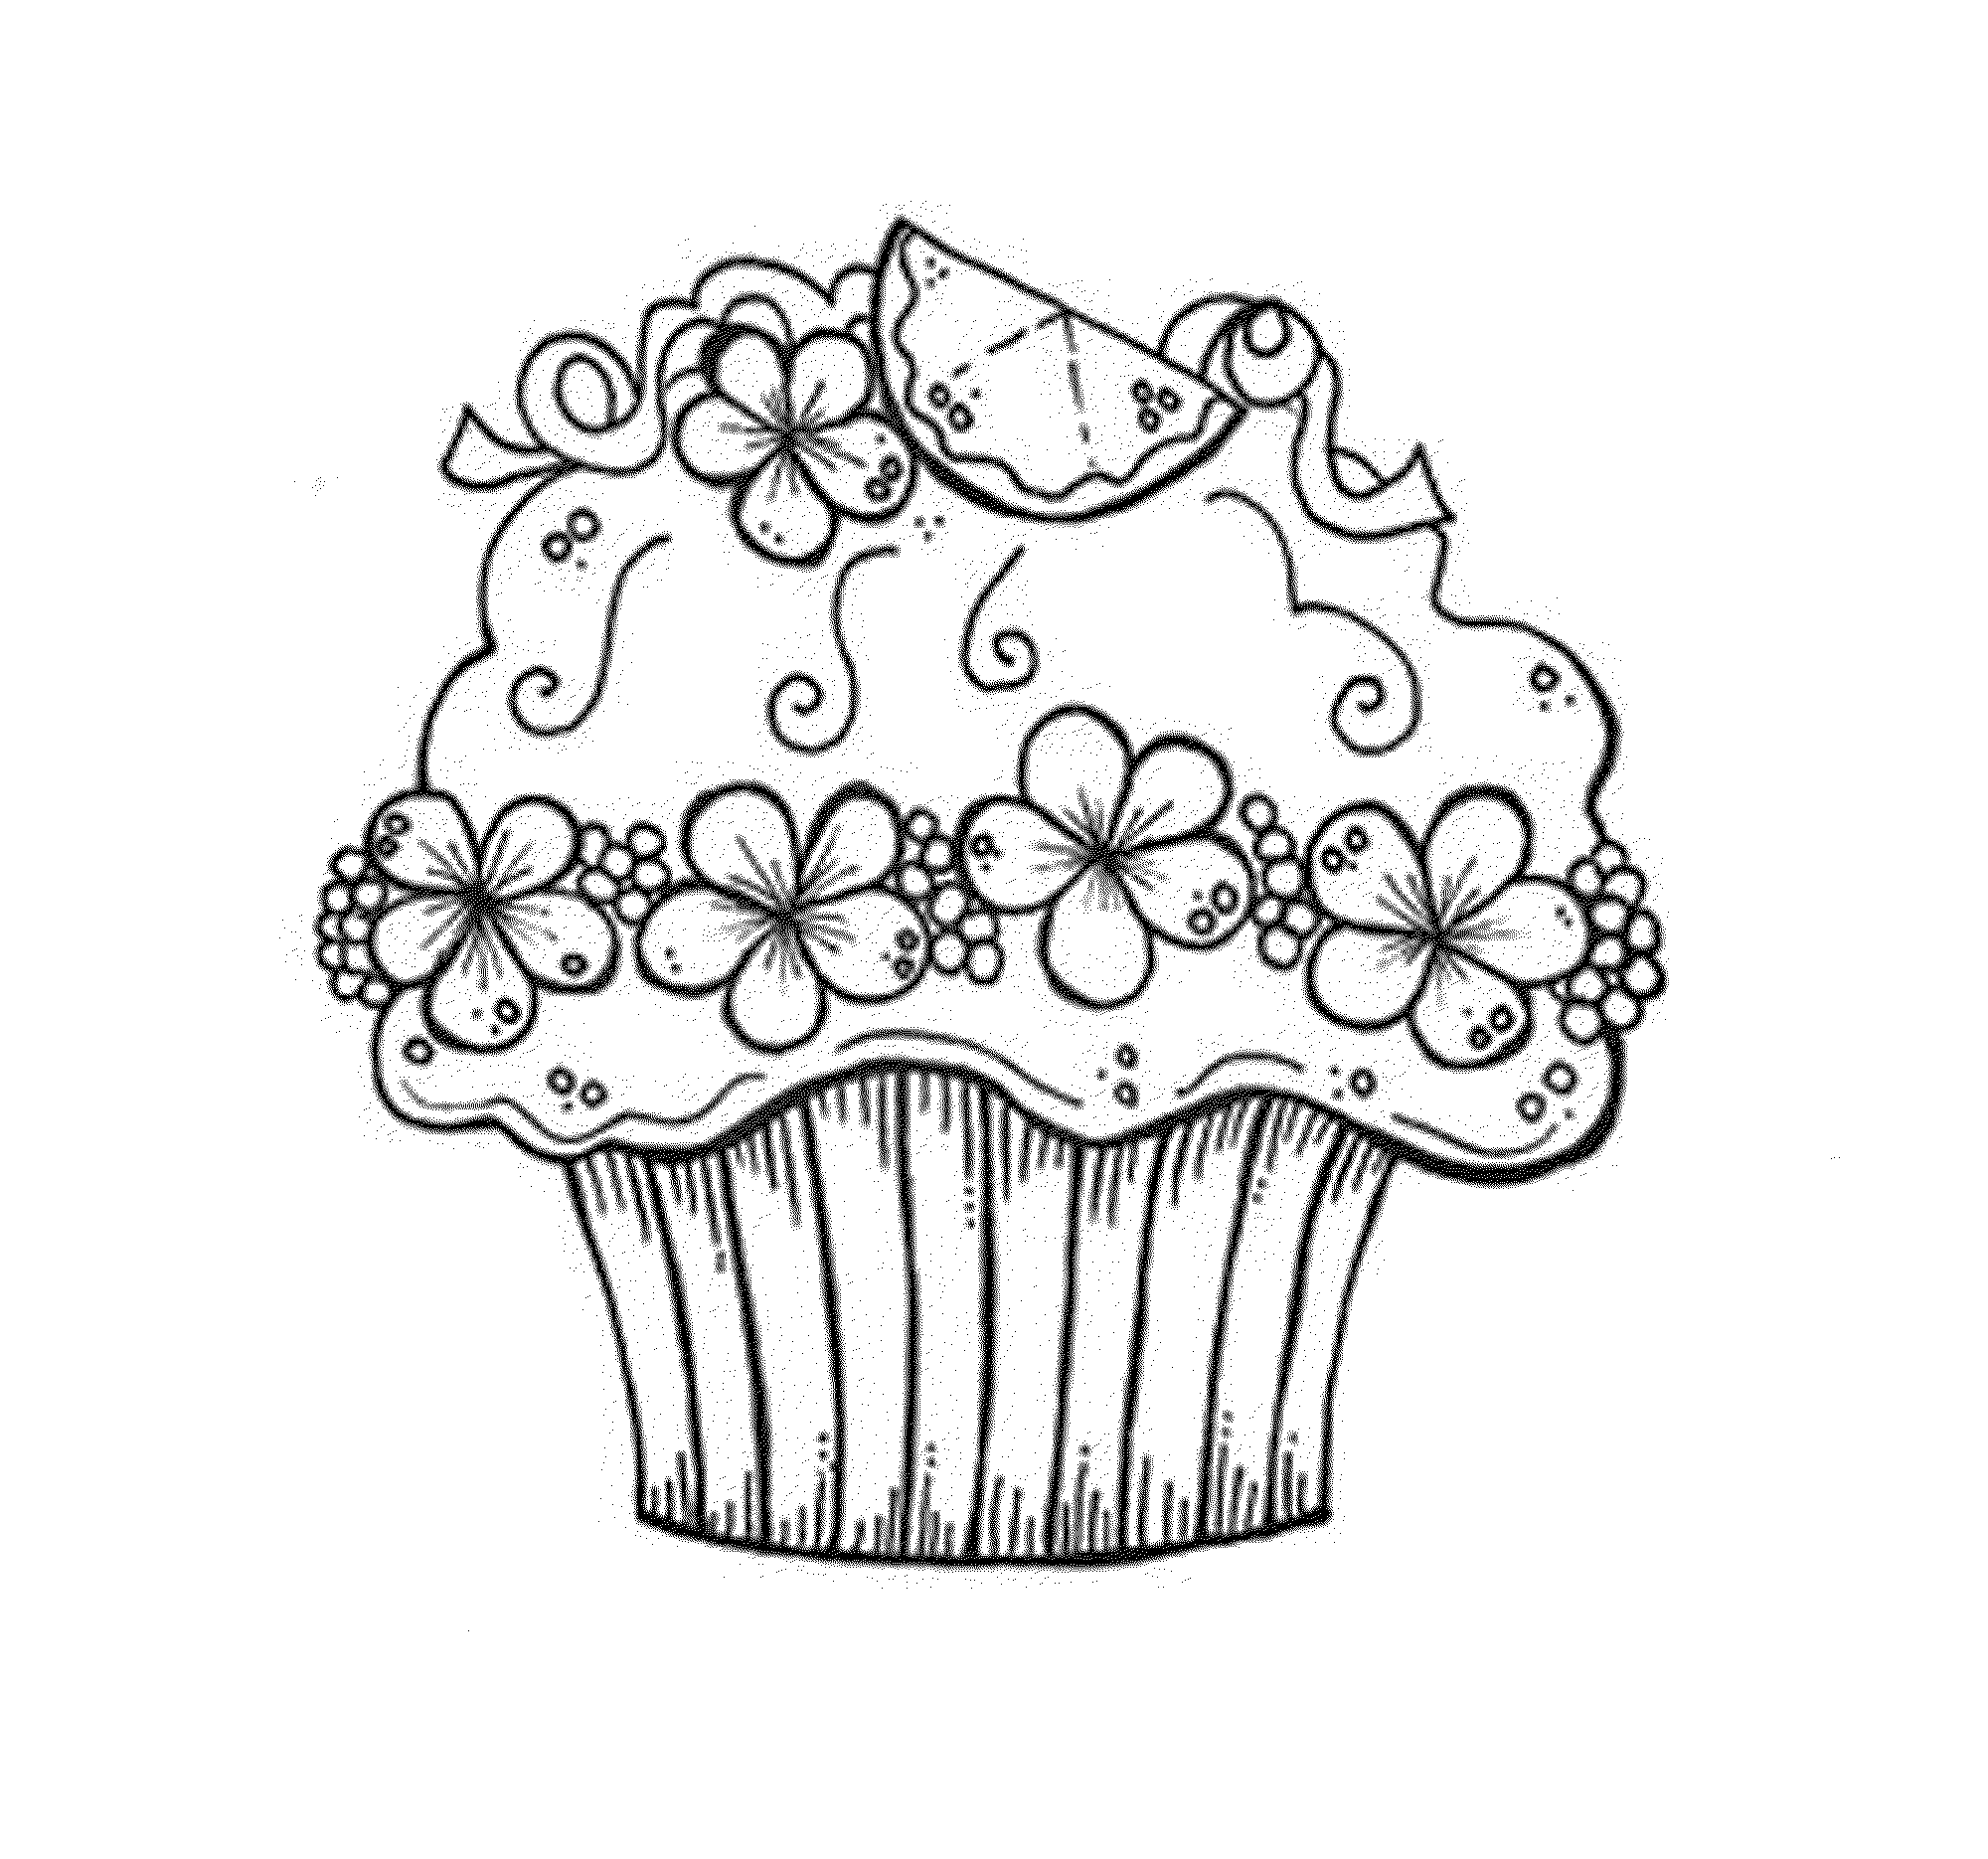 Cupcake Coloring Pages Free - Coloring Home